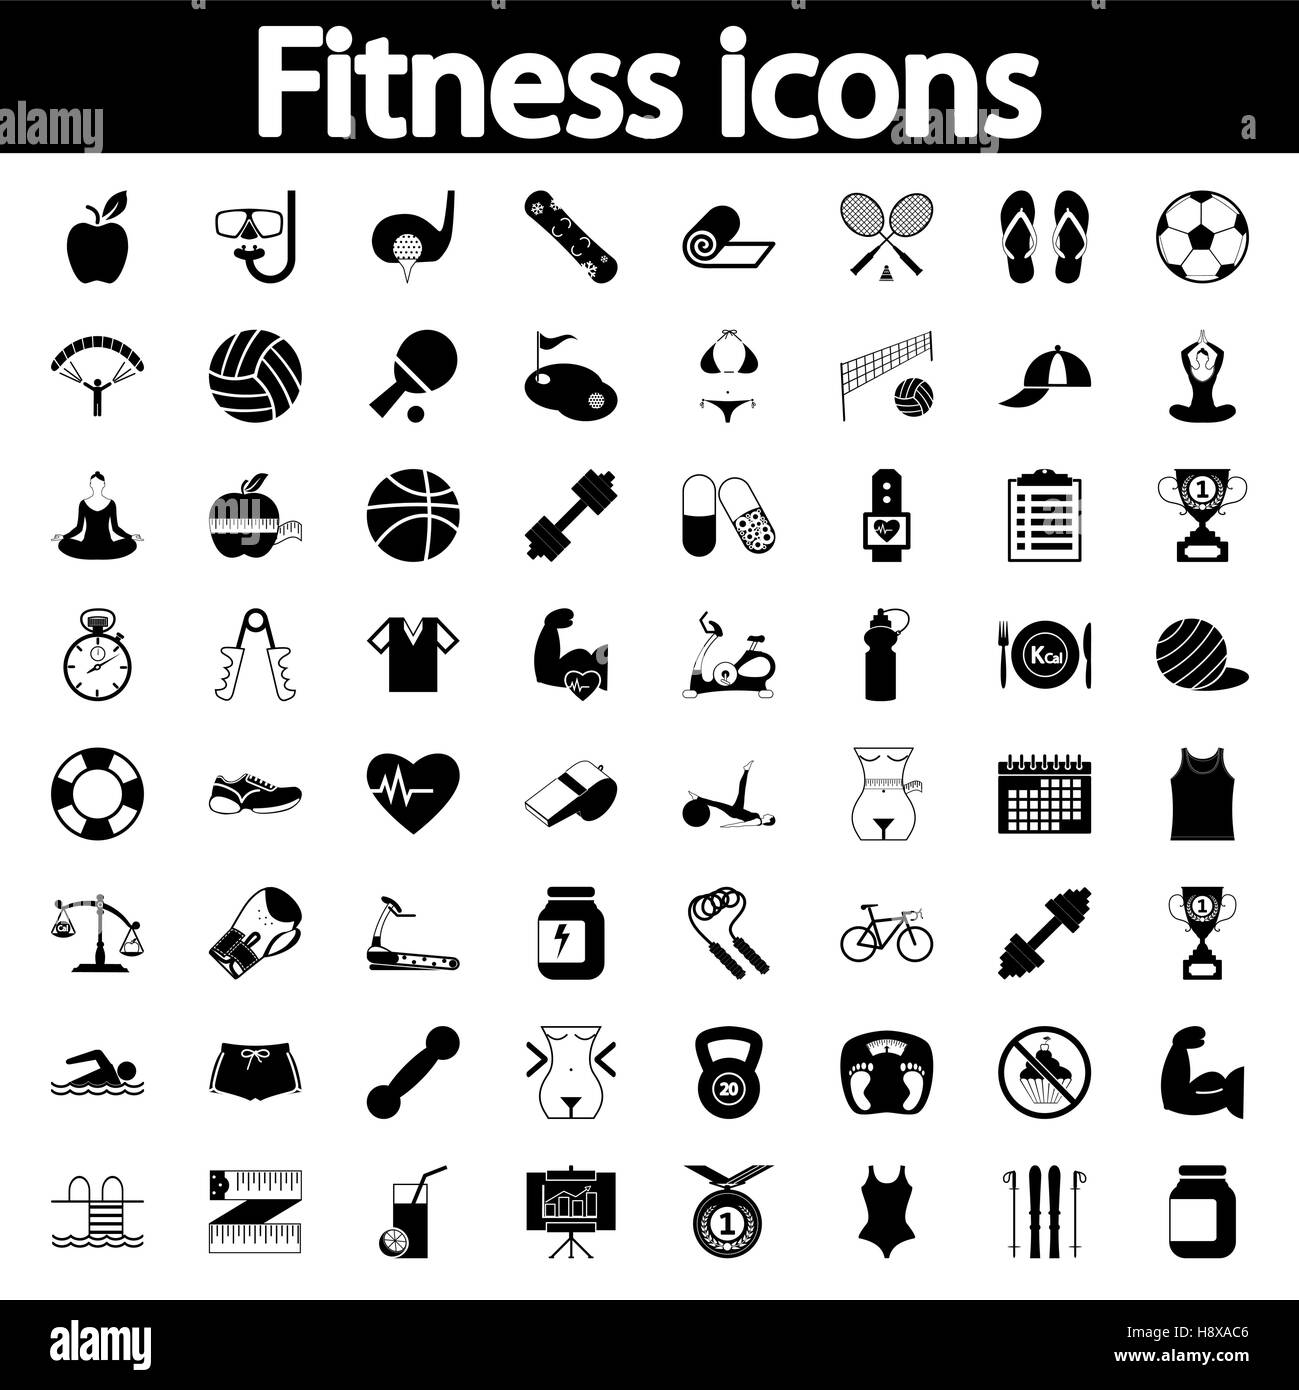 Professiona fitnessl icons for your website. Vector illustration. - Stock Image